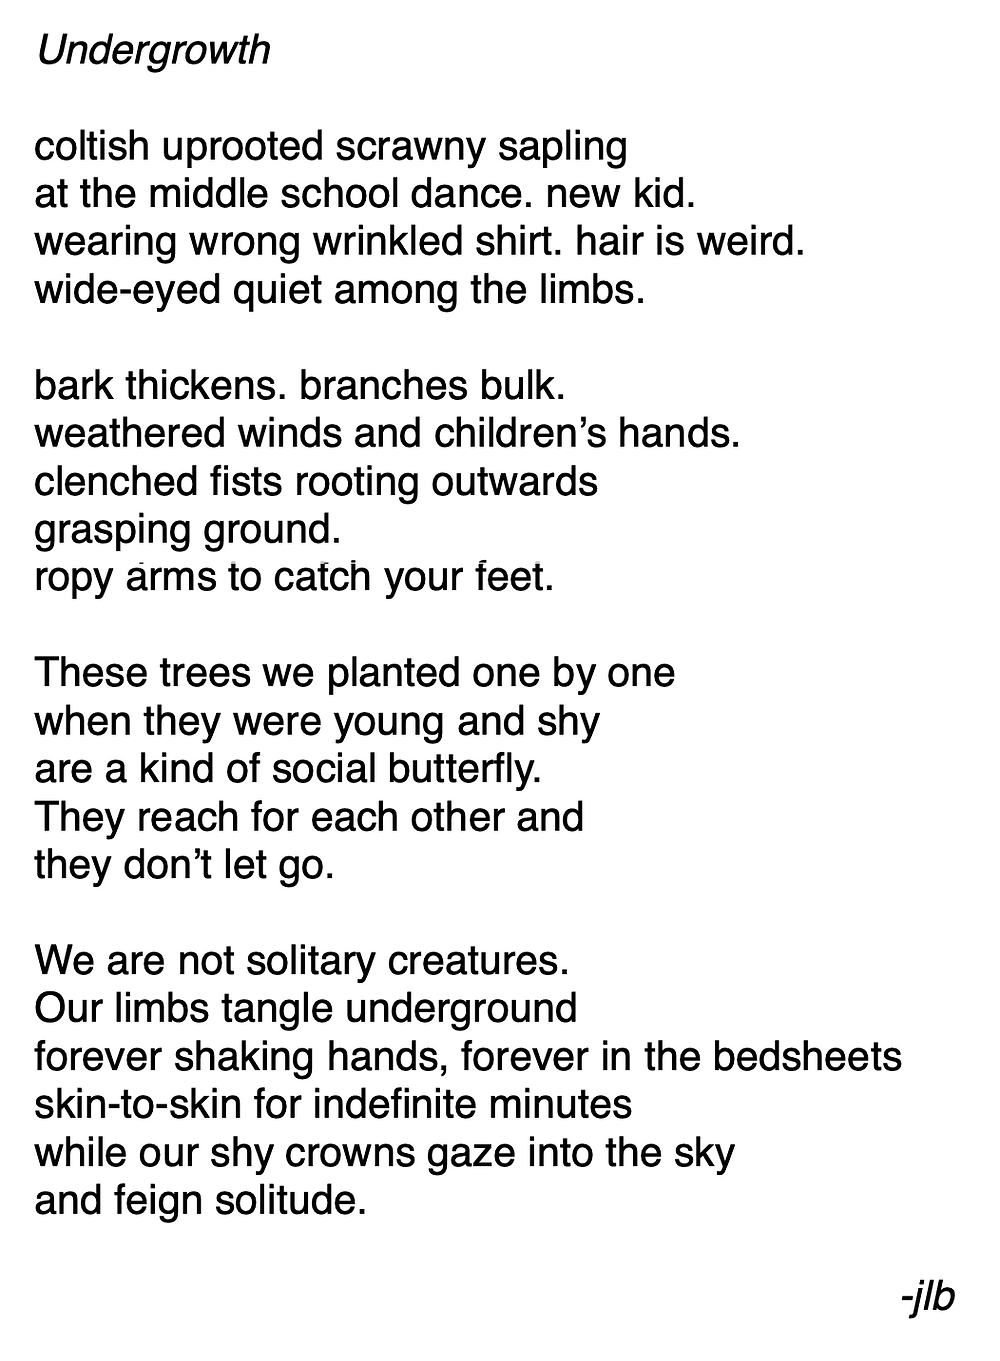 Undergrowth //  coltish uprooted scrawny sapling /at the middle school dance. new kid./ wearing wrong wrinkled shirt. hair is weird. /wide-eyed quiet among the limbs. / bark thickens. branches bulk./ weathered winds and children's hands. /clenched fists rooting outwards /grasping ground. /ropy arms to catch your feet./  These trees we planted one by one /when they were young and shy/ are a kind of social butterfly./ They reach for each other and /they don't let go./  We are not solitary creatures./ Our limbs tangle underground /forever shaking hands, /forever in the bedsheets /skin-to-skin for indefinite minutes/ while our shy crowns gaze into the sky/ and feign solitude.